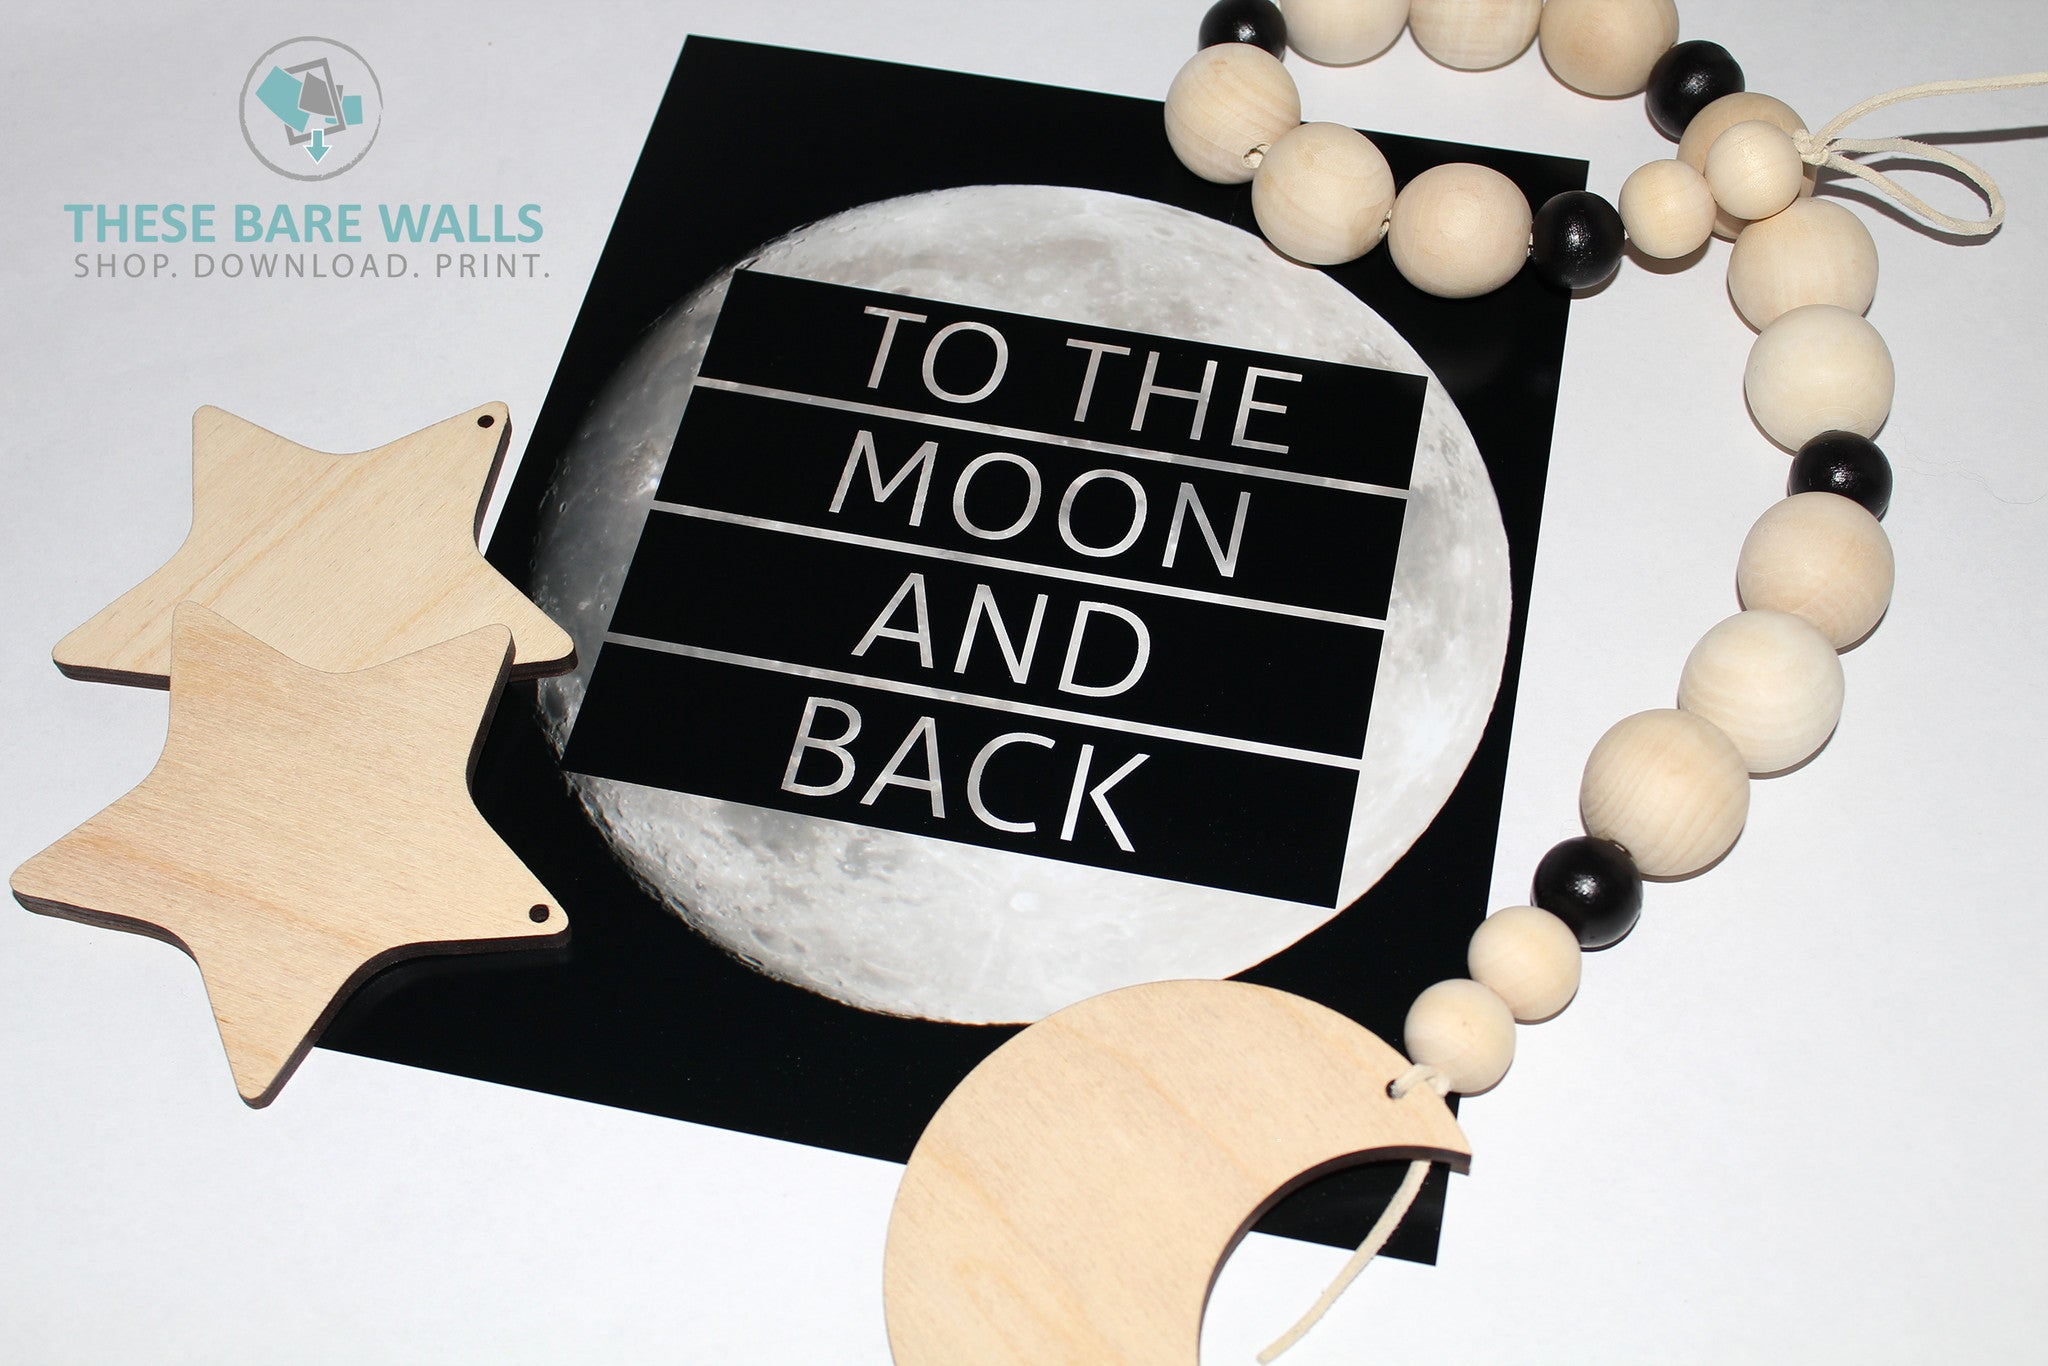 Wood Beaded Garland The Stella Over The Moon Wood Beaded Garland W These Bare Walls